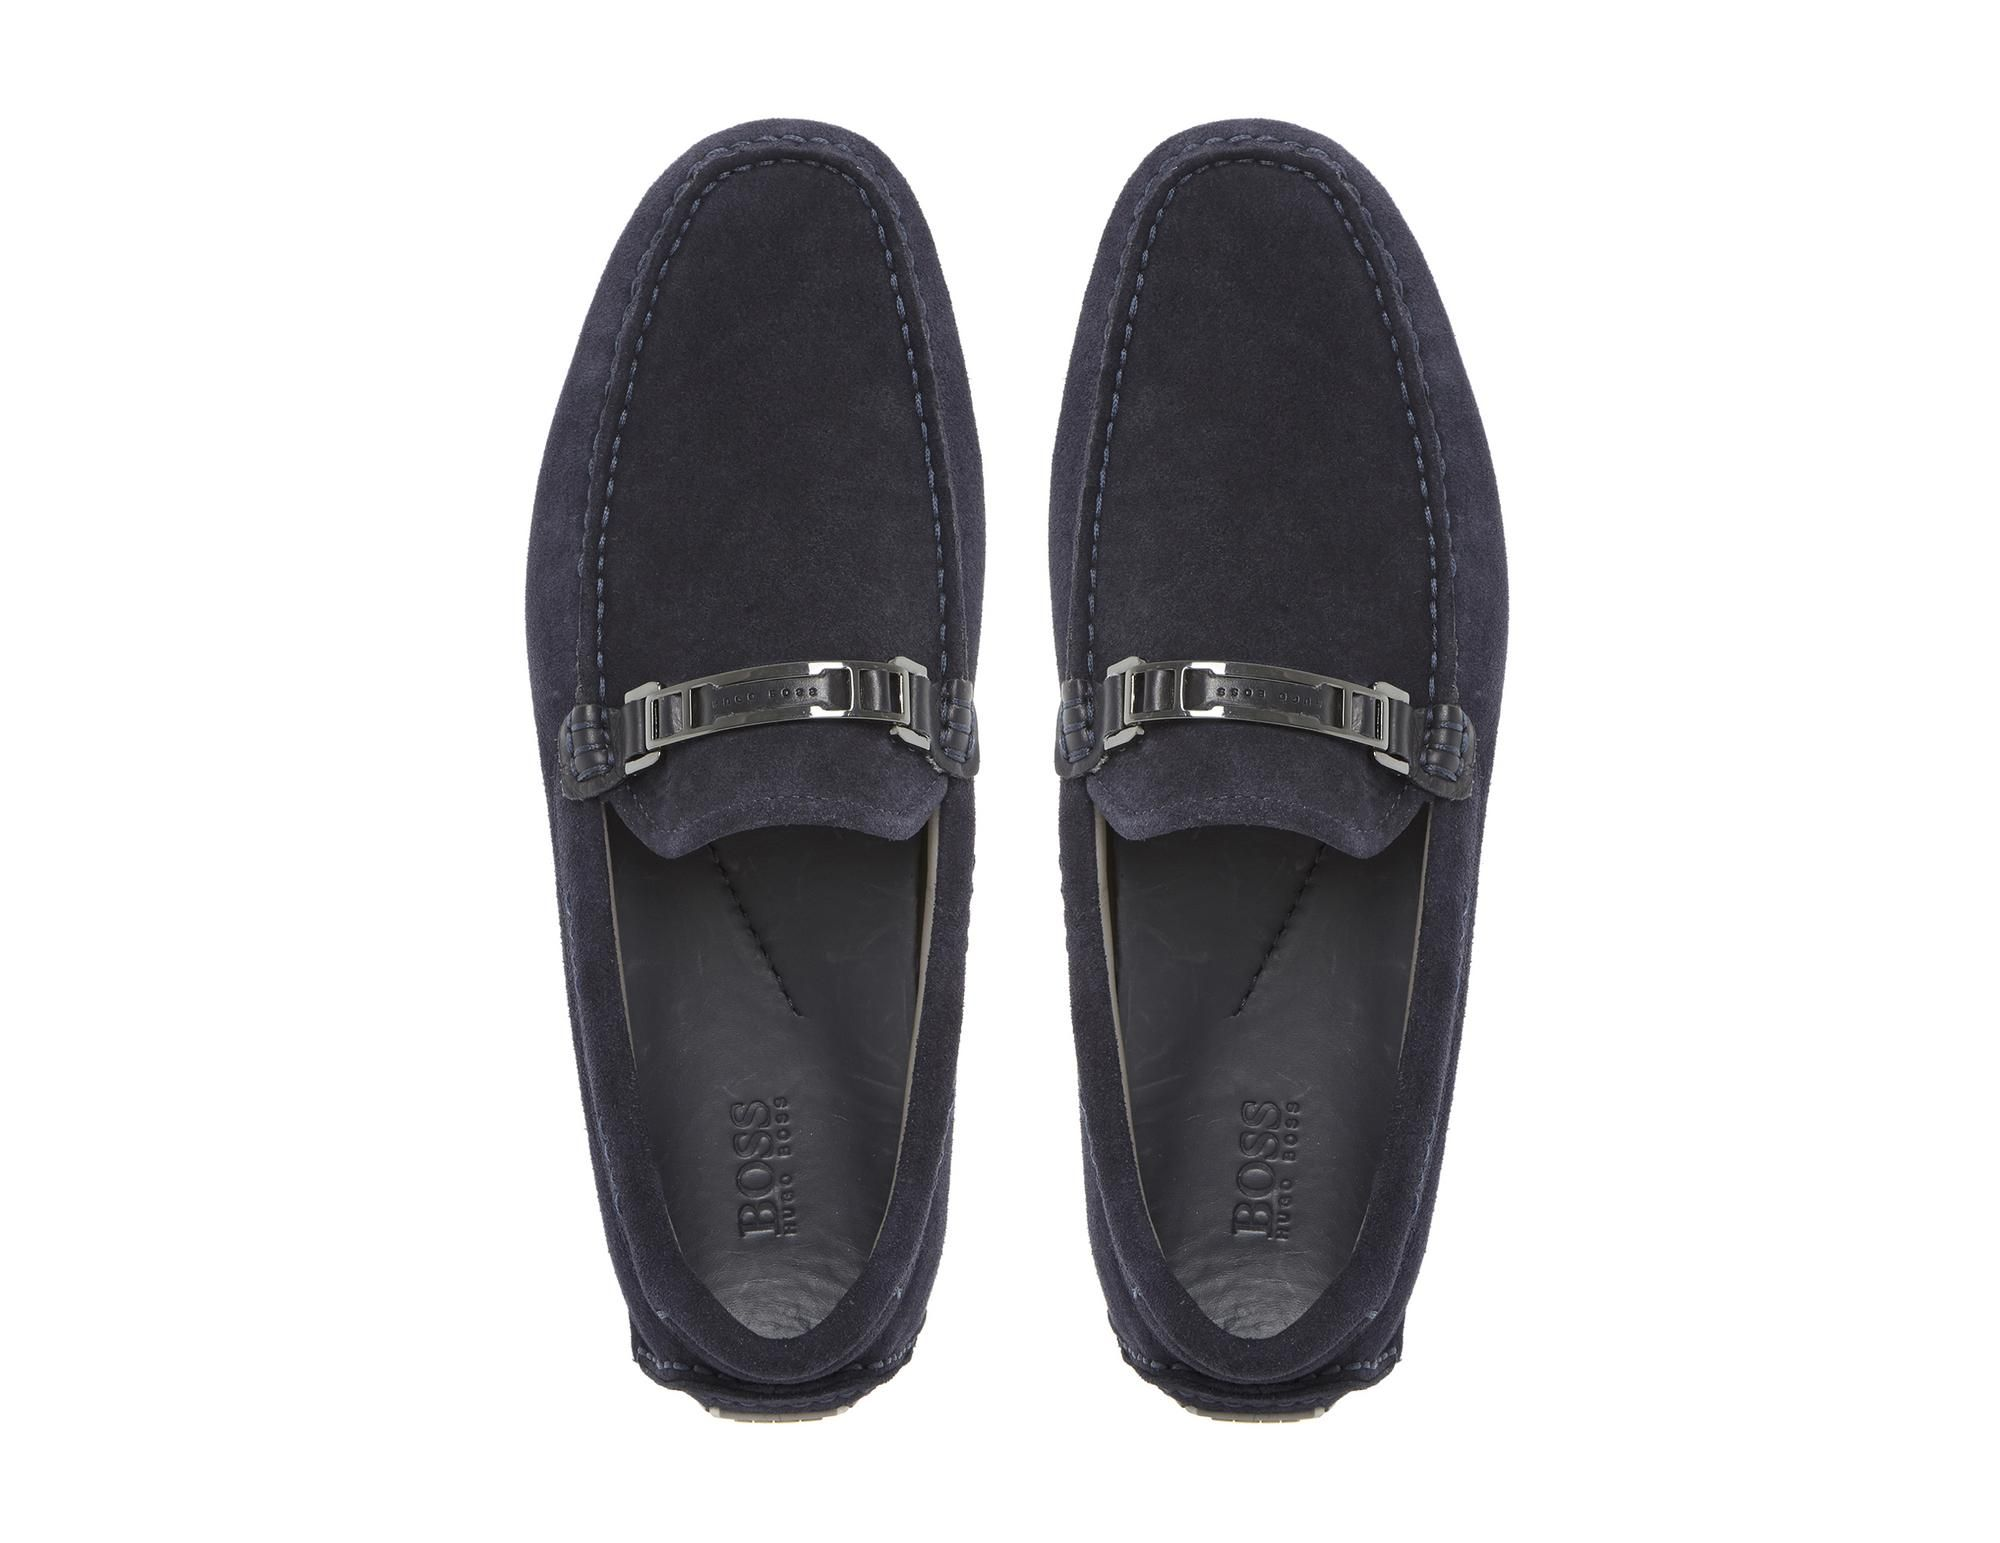 Dune shoes, Mens casual shoes, Driving